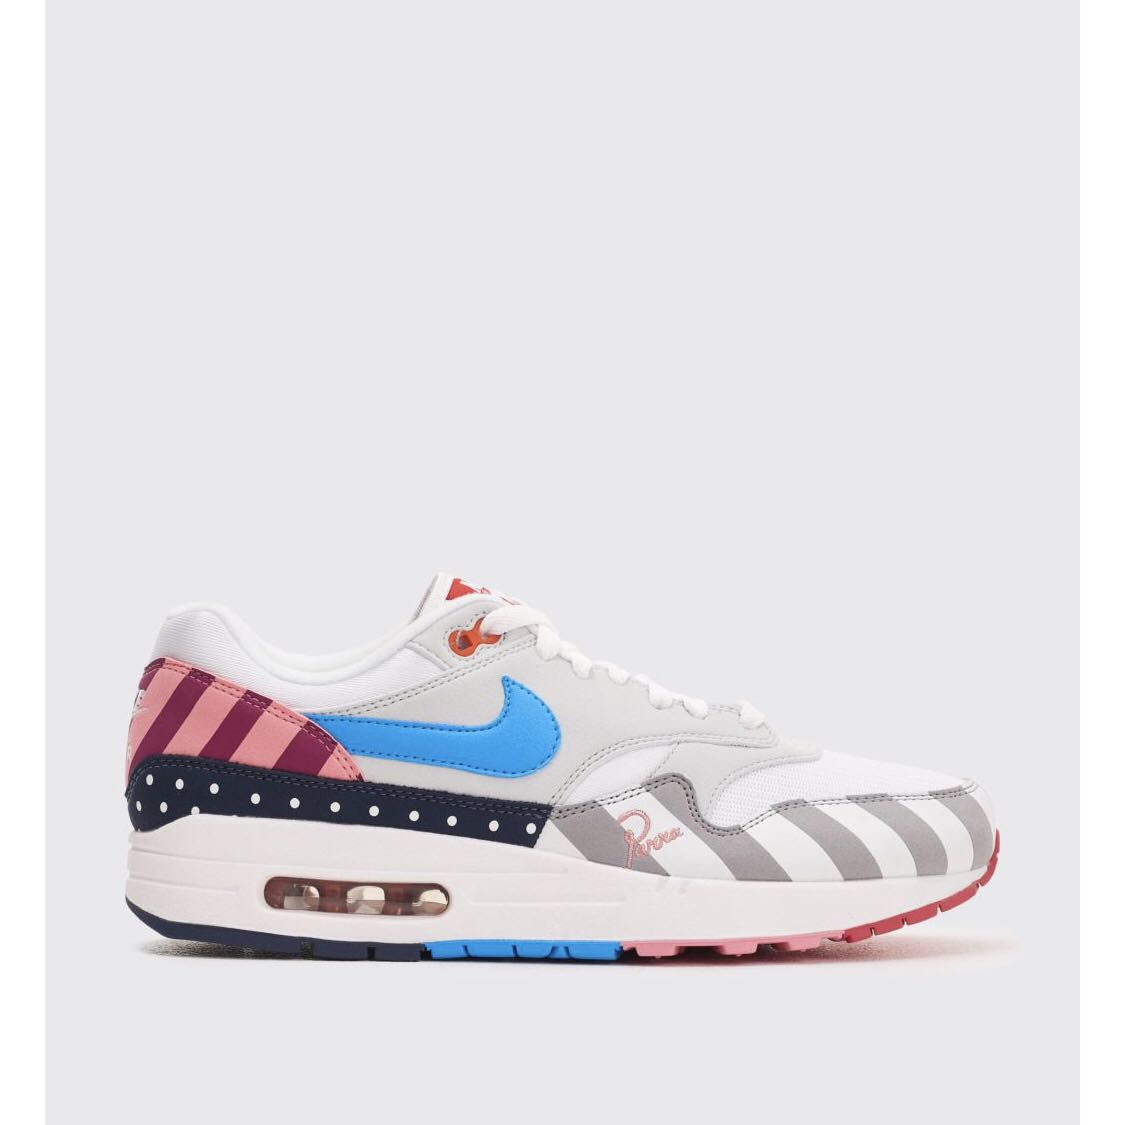 the best attitude 014c5 8ac61 UK10 US11 NIKE X PARRA AIR MAX 1, Men's Fashion, Footwear, Sneakers ...